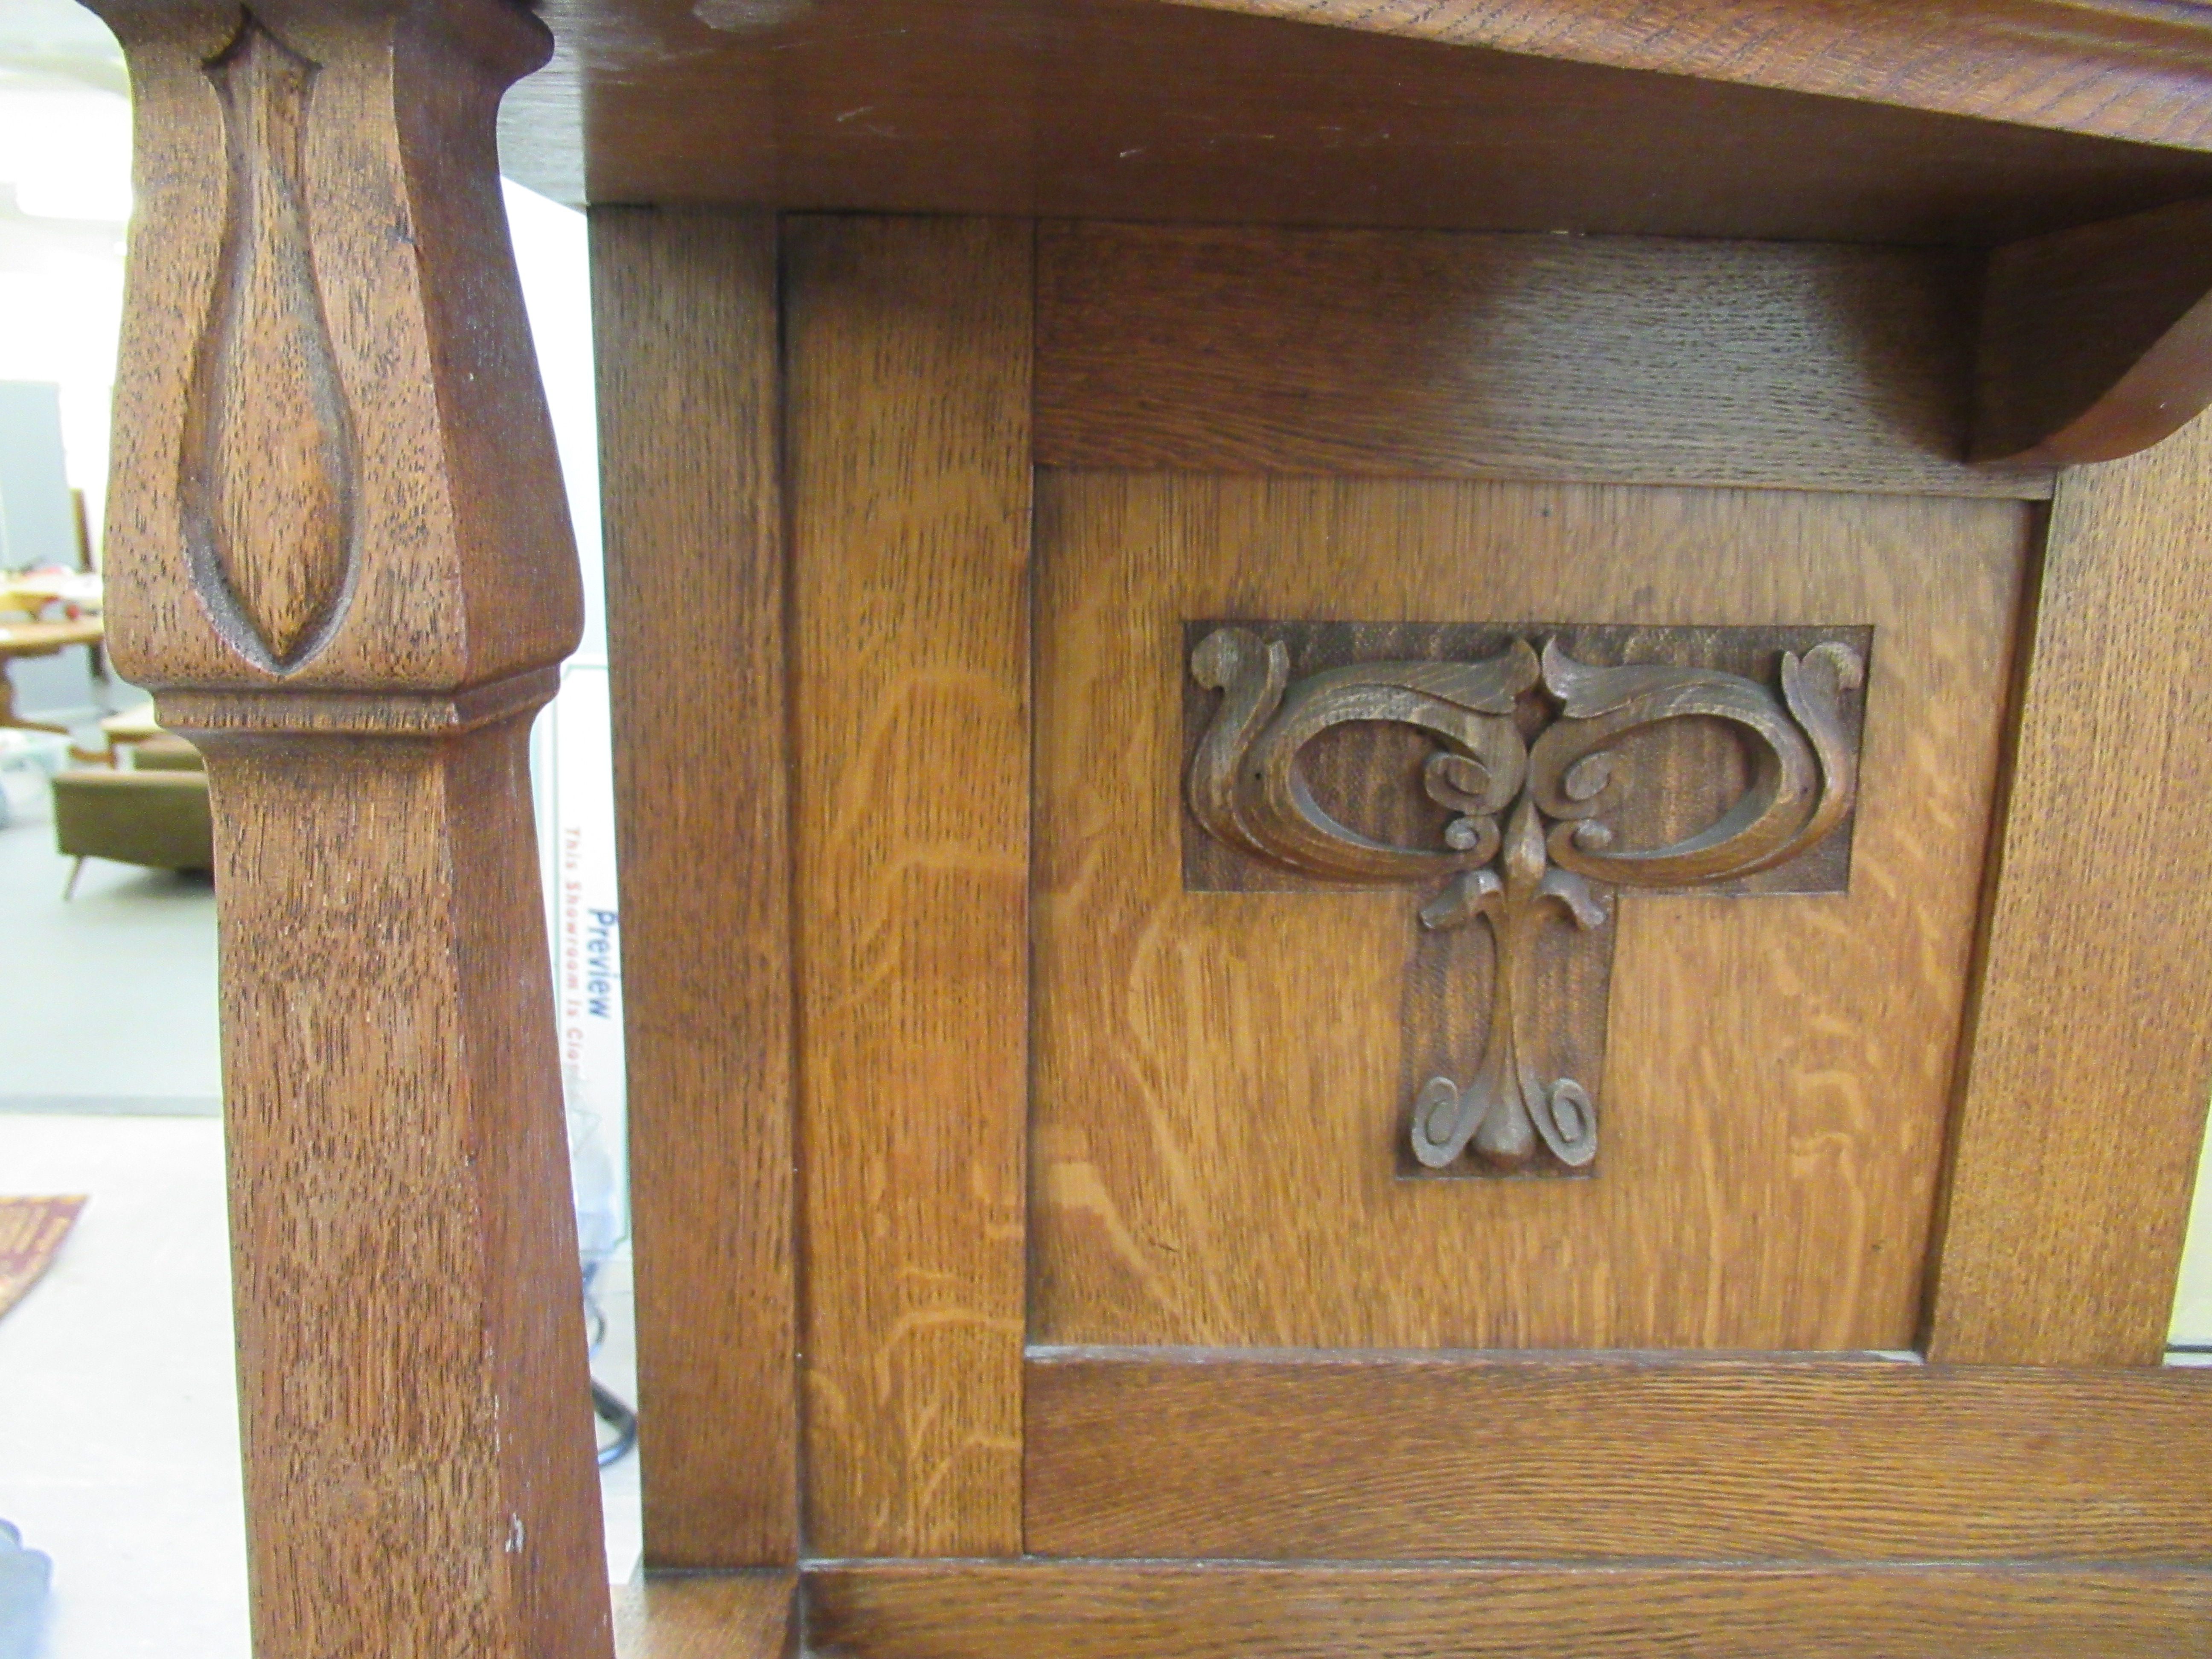 An early 20thC Liberty & Co light oak dresser with carved organically inspired ornament, the - Image 7 of 14